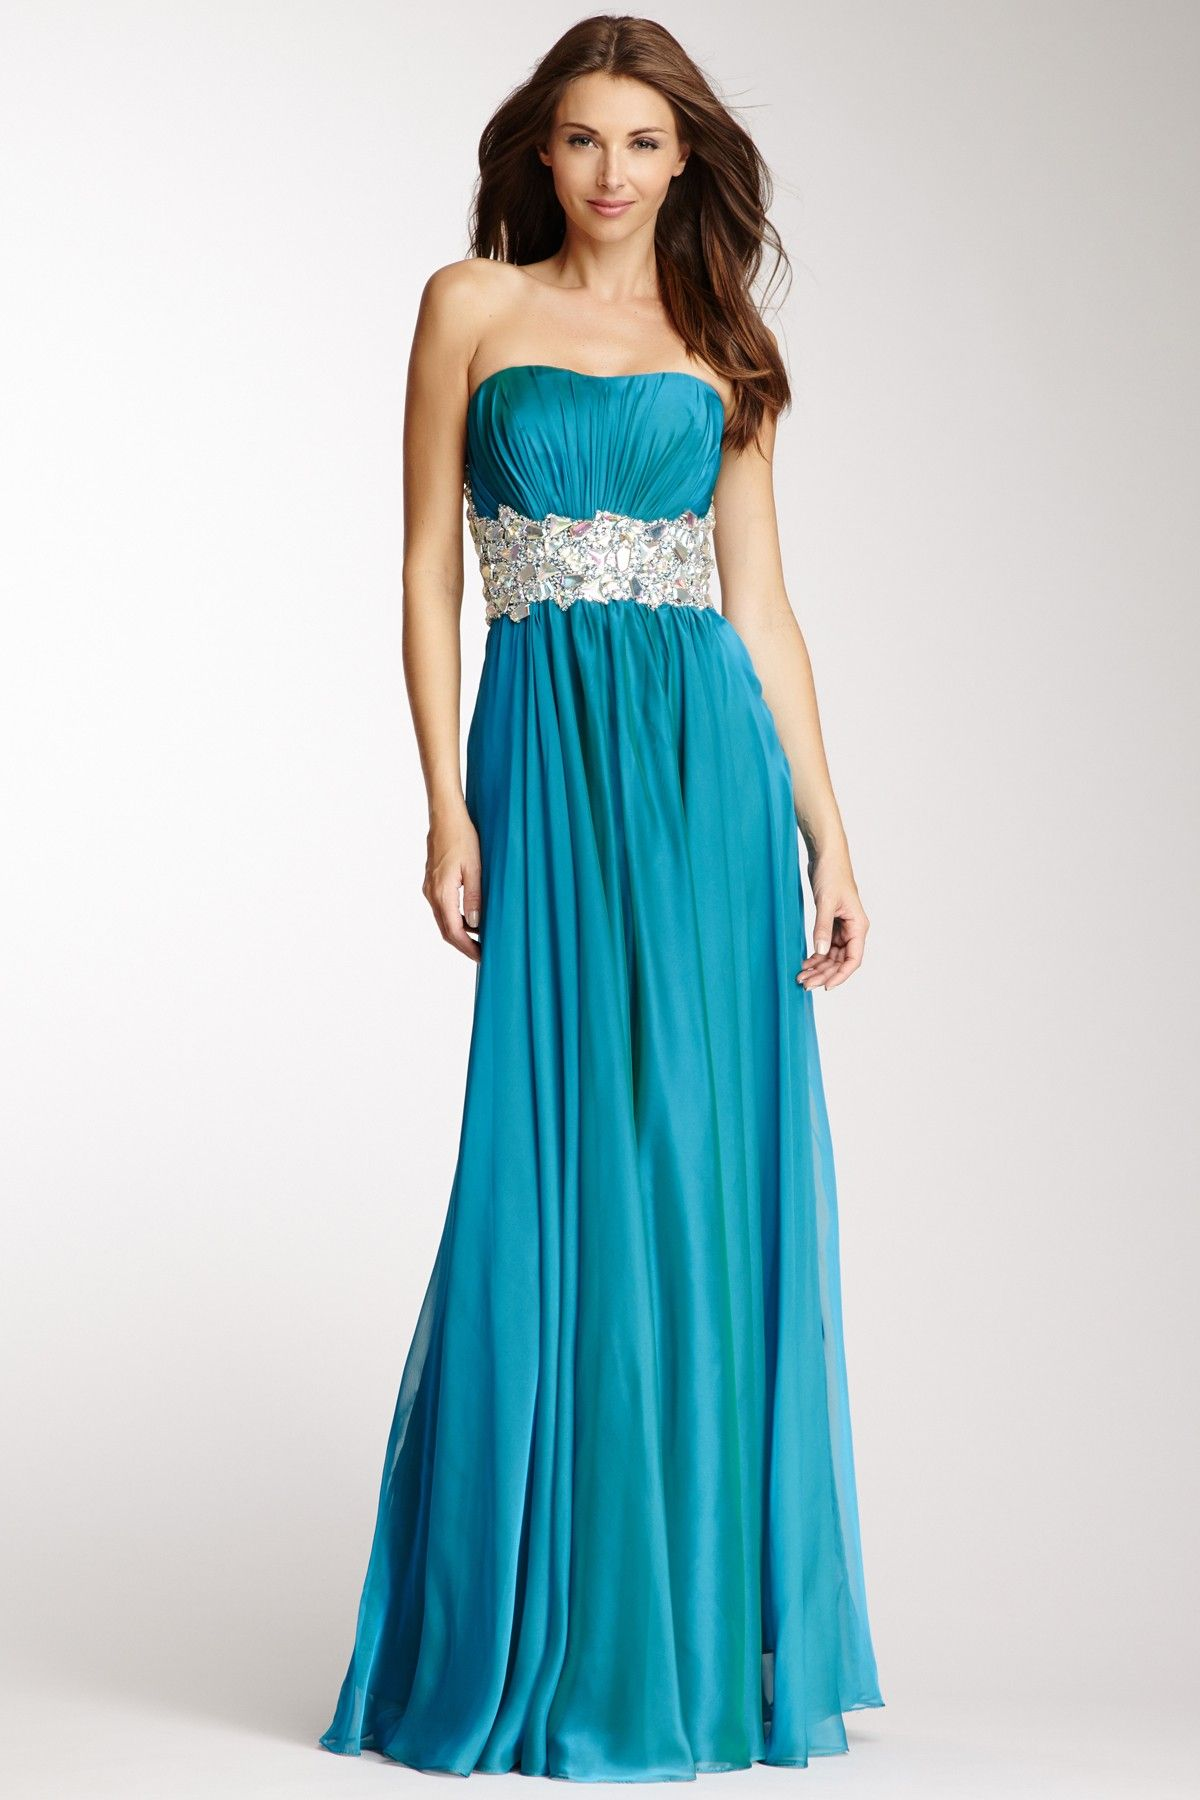 bd640900574 This color is freakin fantastic!  ) if only it was short... Strapless  Beaded Cutout Back Gown